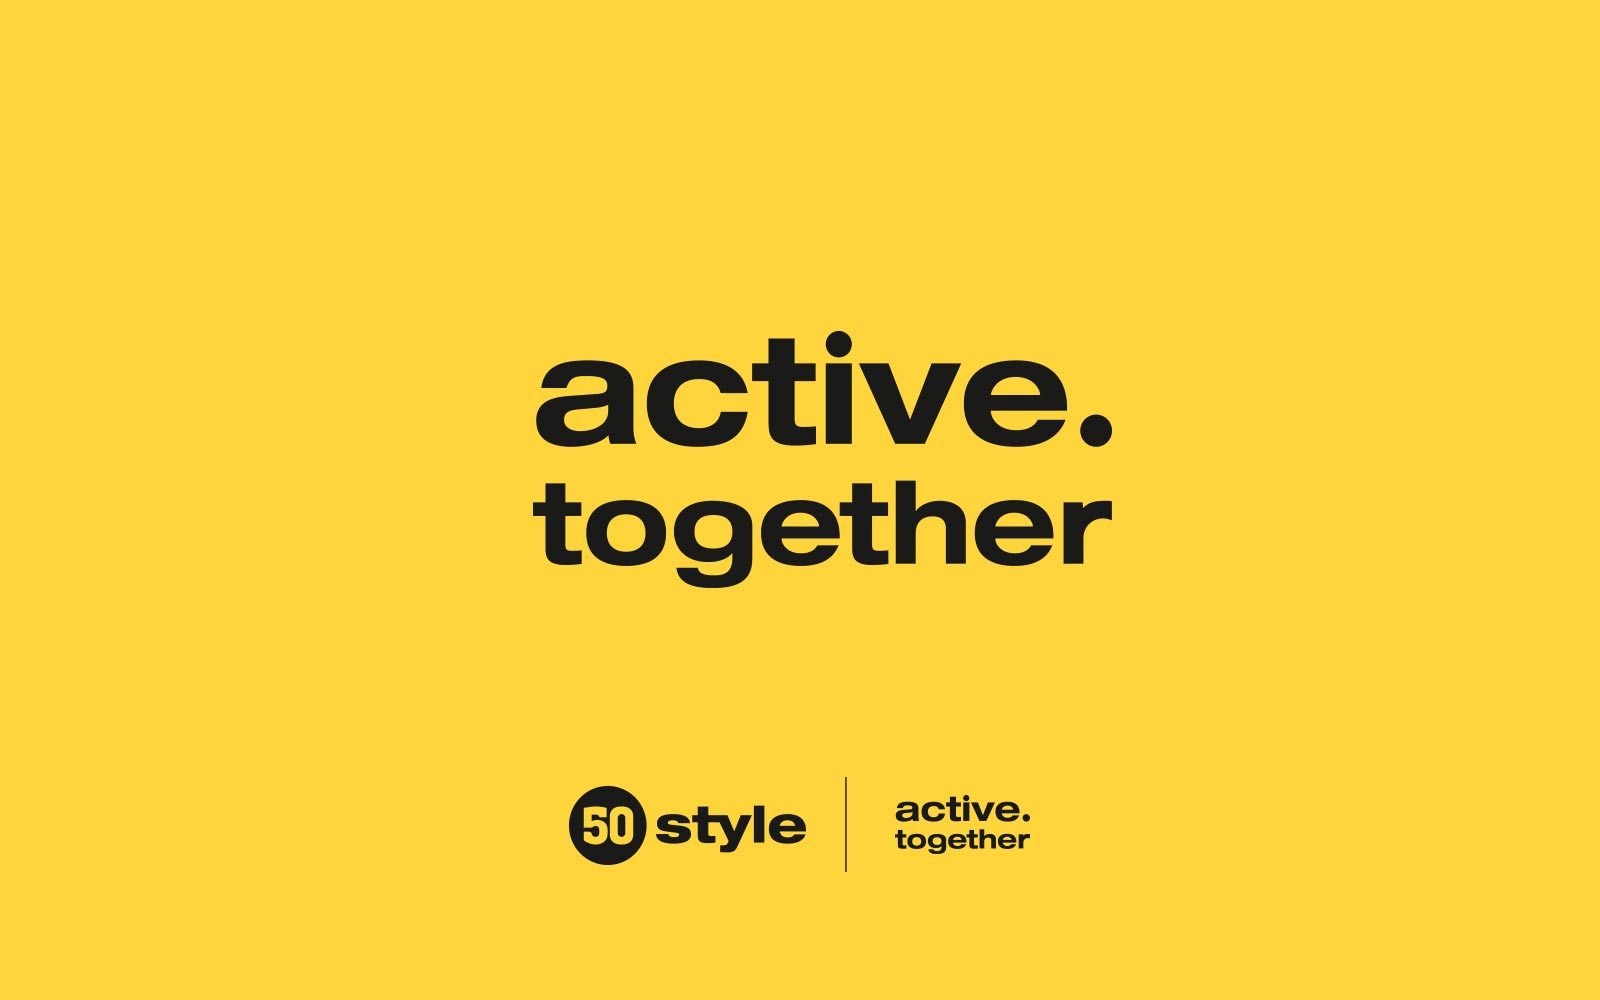 50style | active together